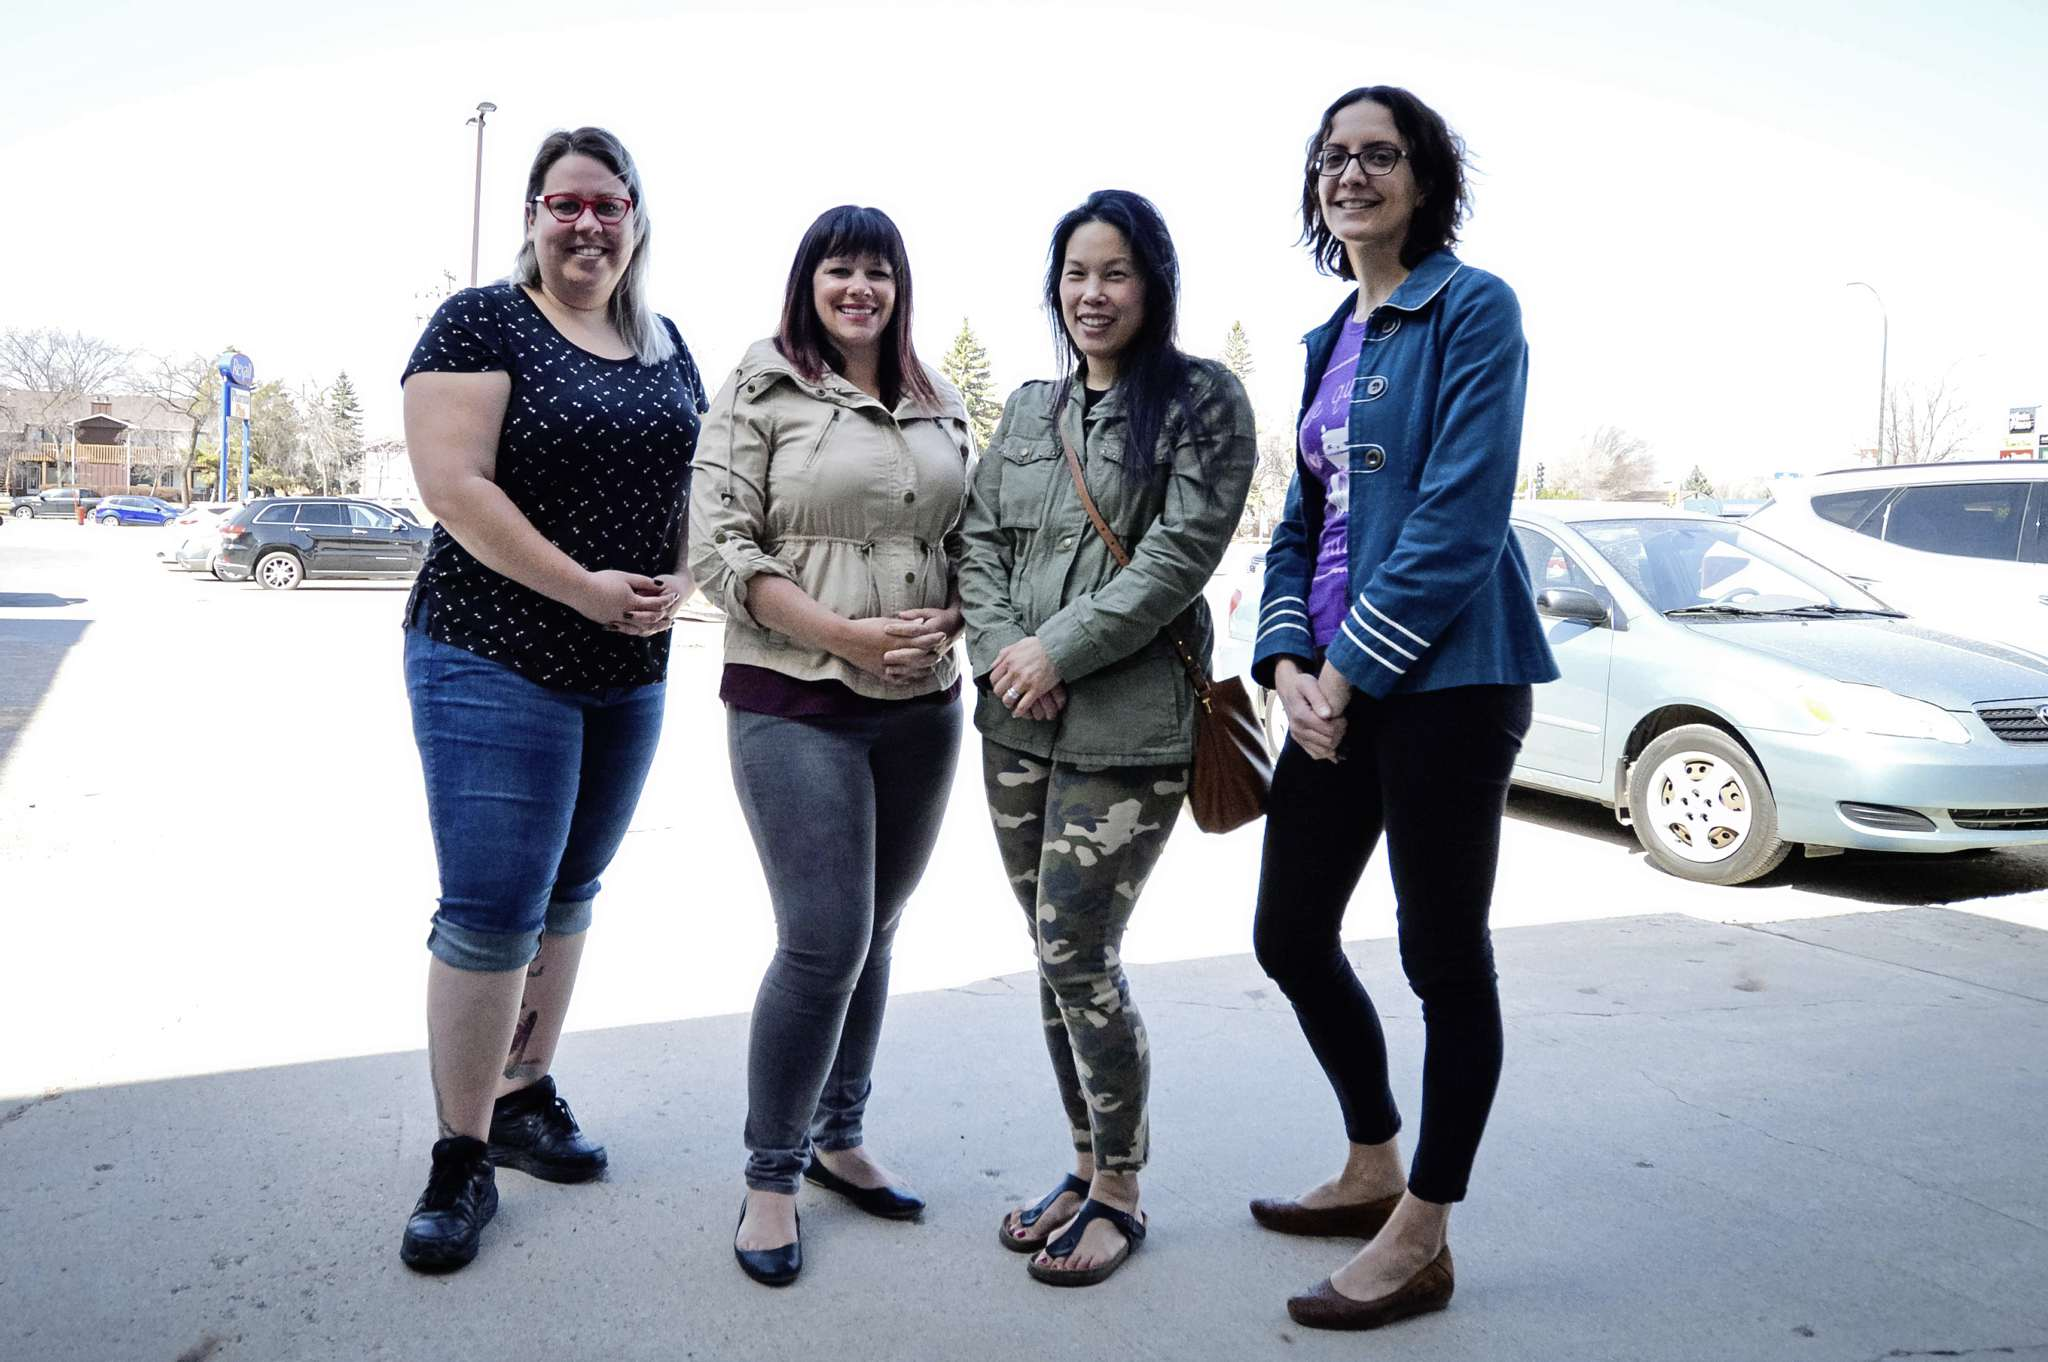 Members of the RPSCA board. From left to right: Andrea Danelak, communications director; Nicole Hacault, volunteer director; Eva Trachtenberg, special events director; and Josée-Anne Le Dorze, chair. Missing: James Stefishen, fundraising director, and Dave Rheault, treasurer.